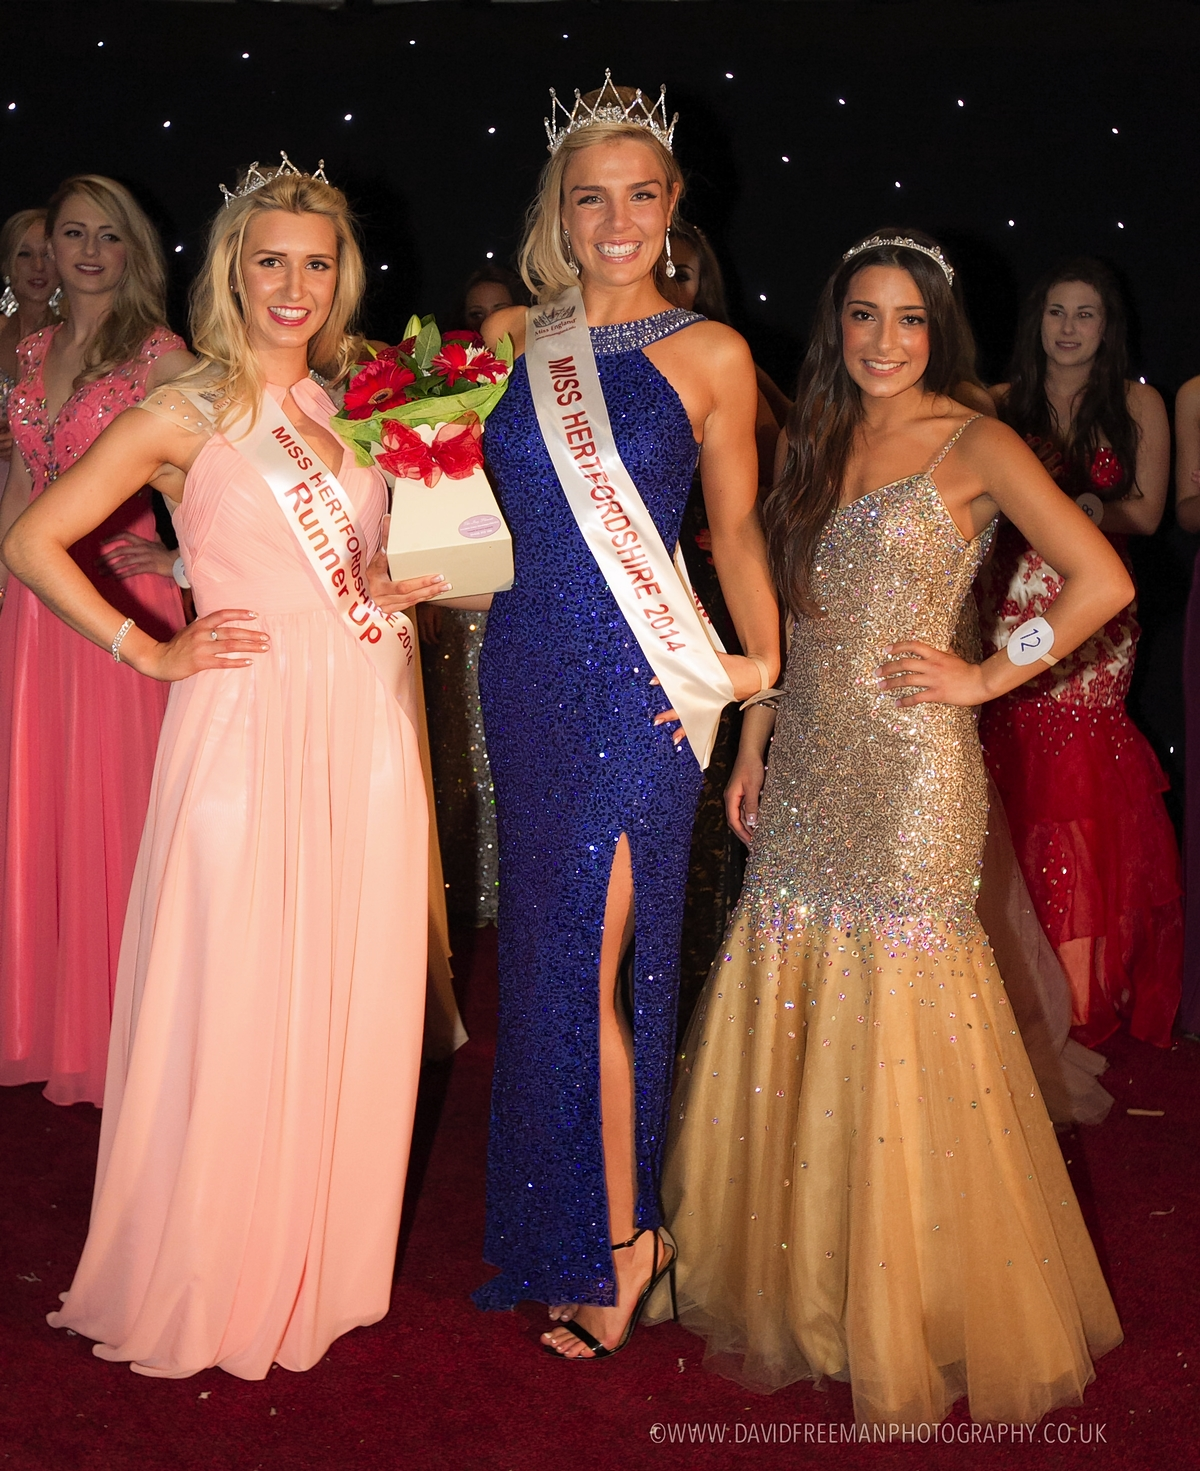 Rickmansworth woman 'absolutely over the moon' at Miss Hertfordshire win